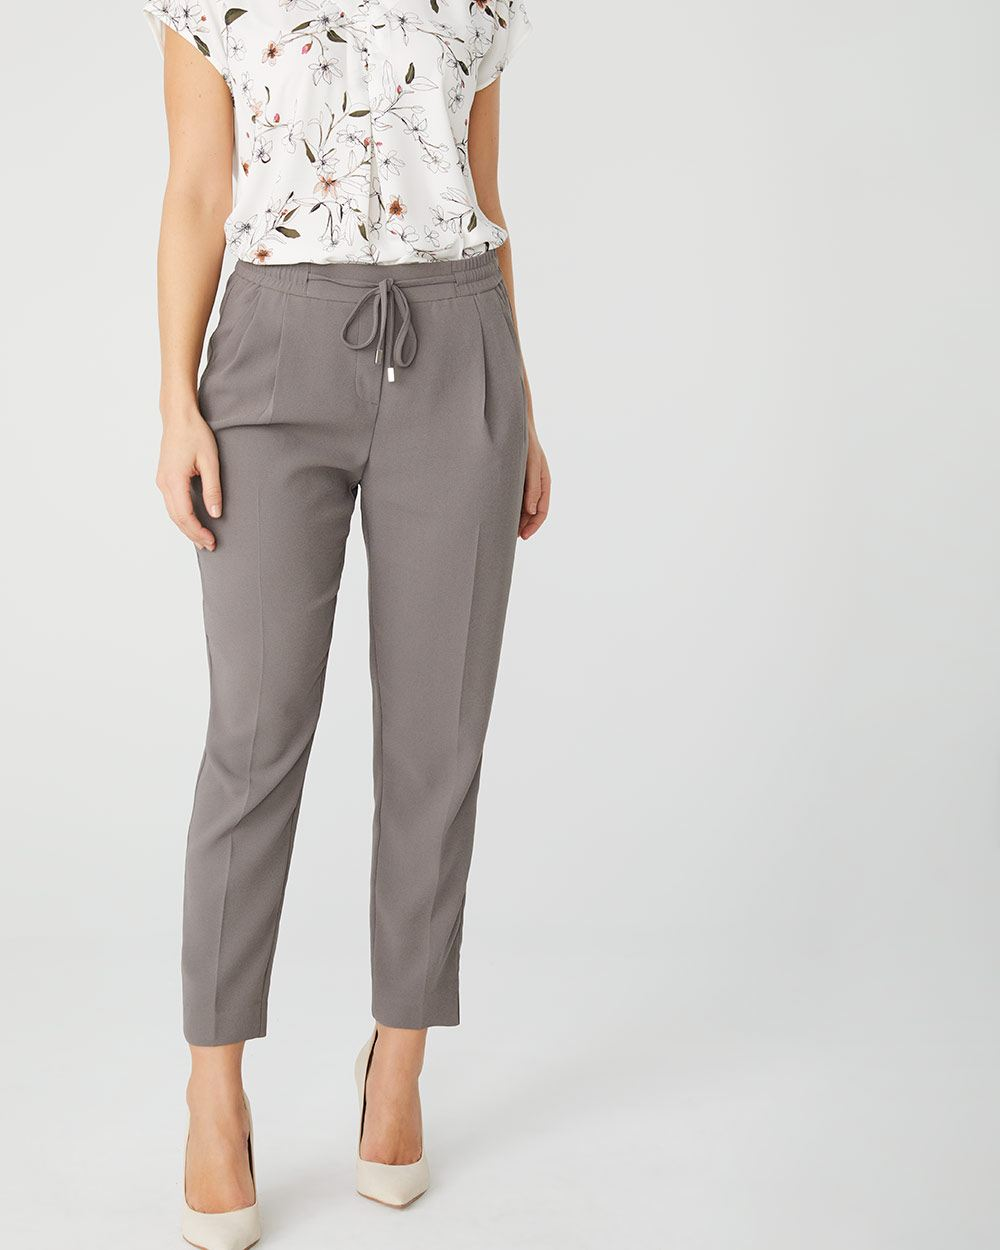 Pleated ankle pull-on pant with drawstring